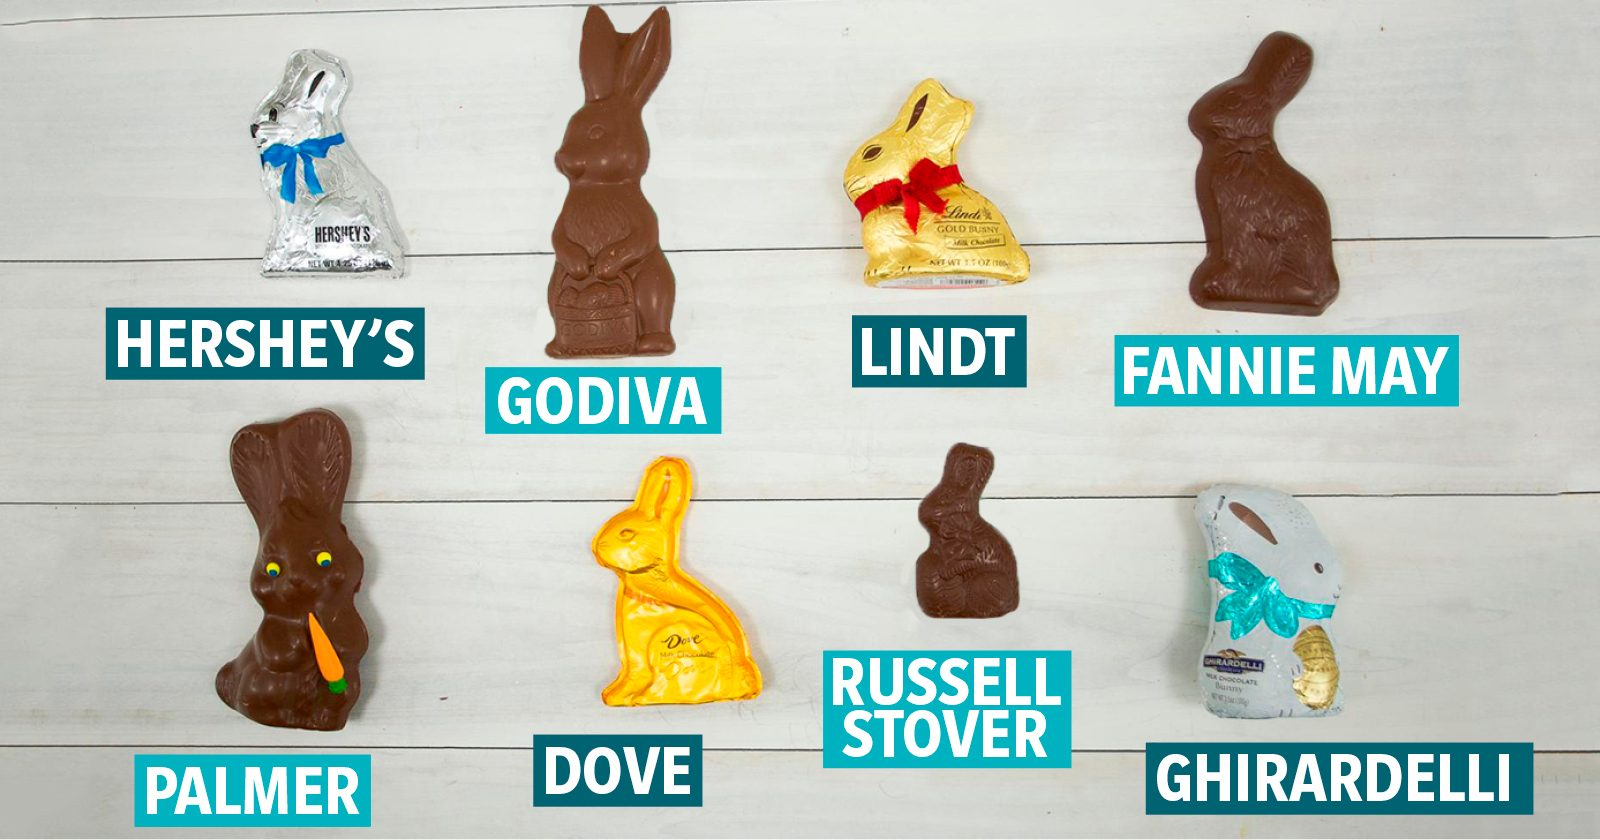 chocolate bunny taste test dive fanny may russell stover palmer hersney's lindt godiva girardelli